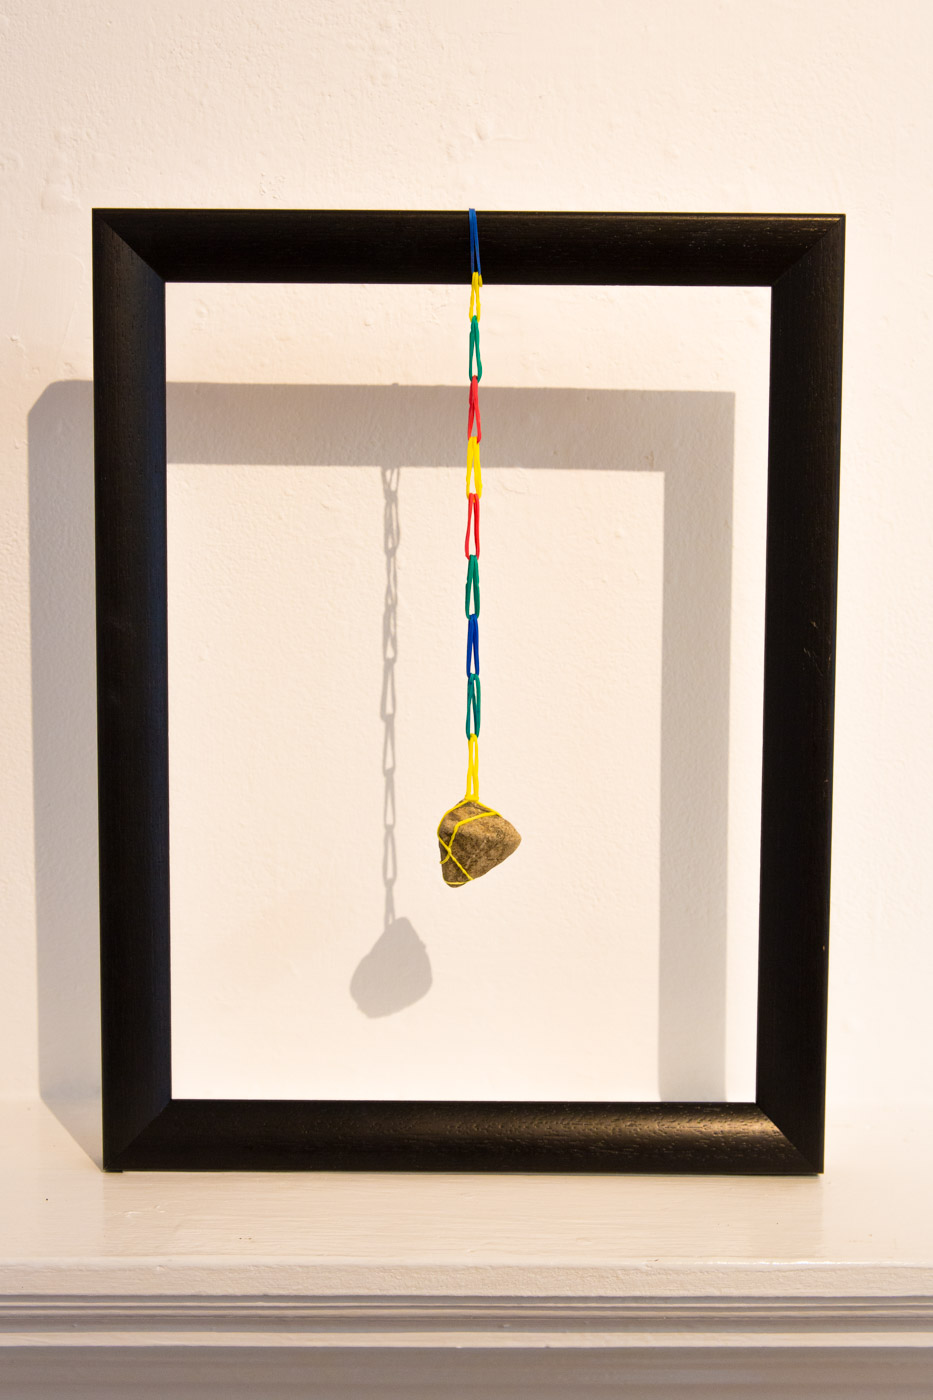 Armegeddon, collected object, 2014   Elastic bands, frame, Megaddo stone